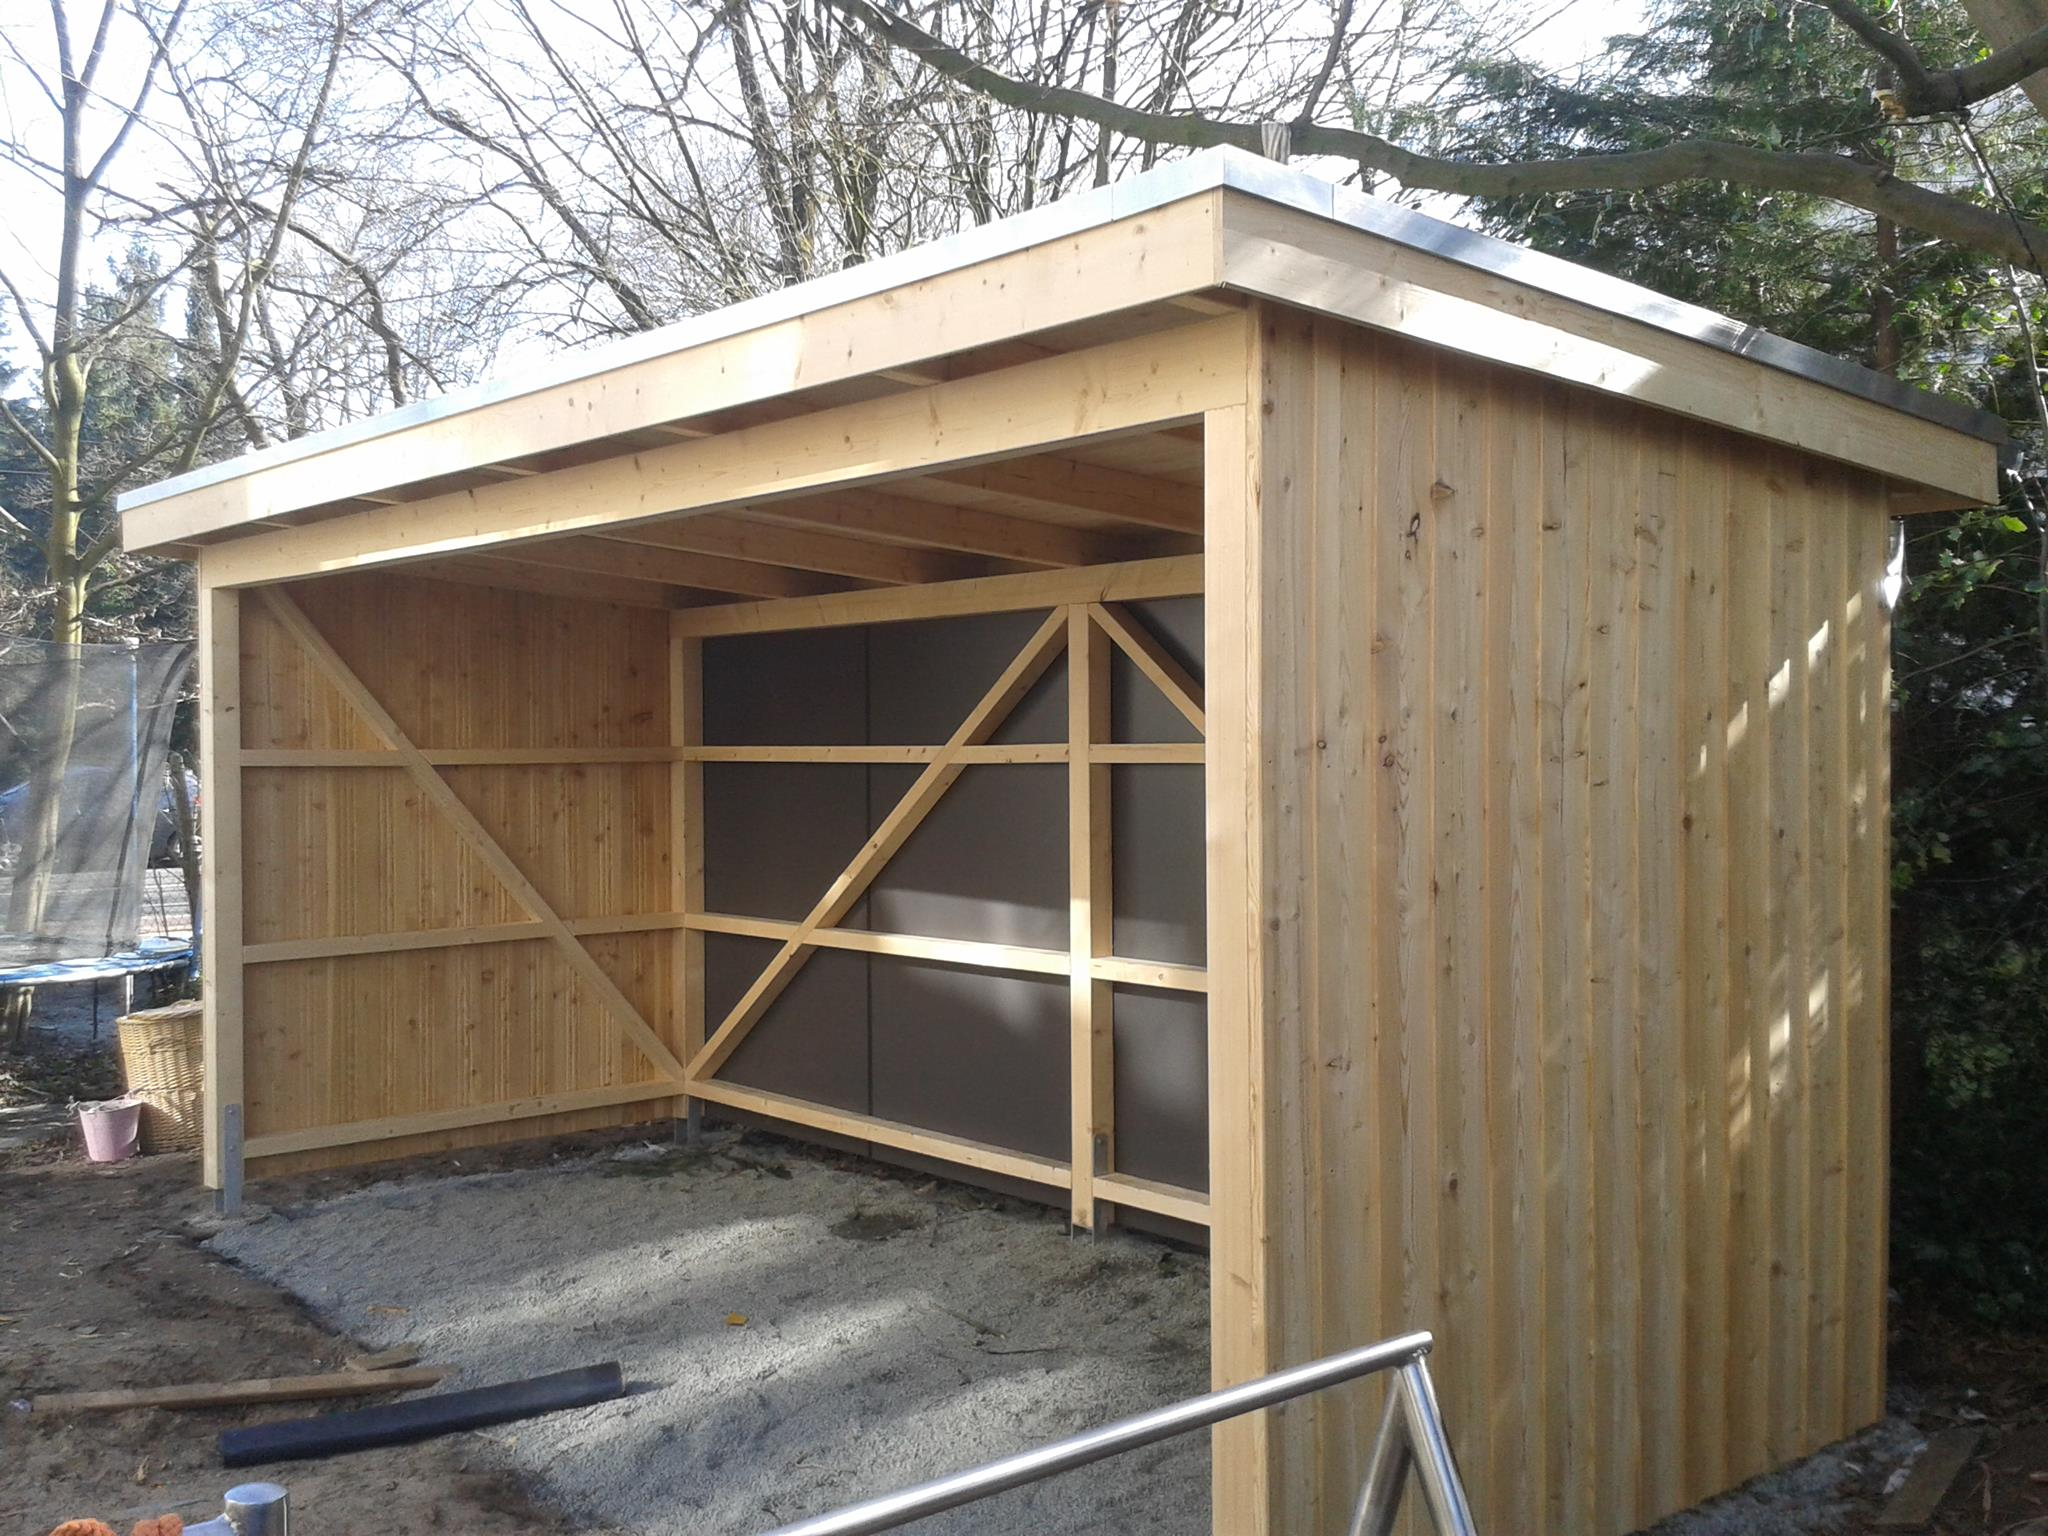 Herk mmliche bedachung for Carport bedachung